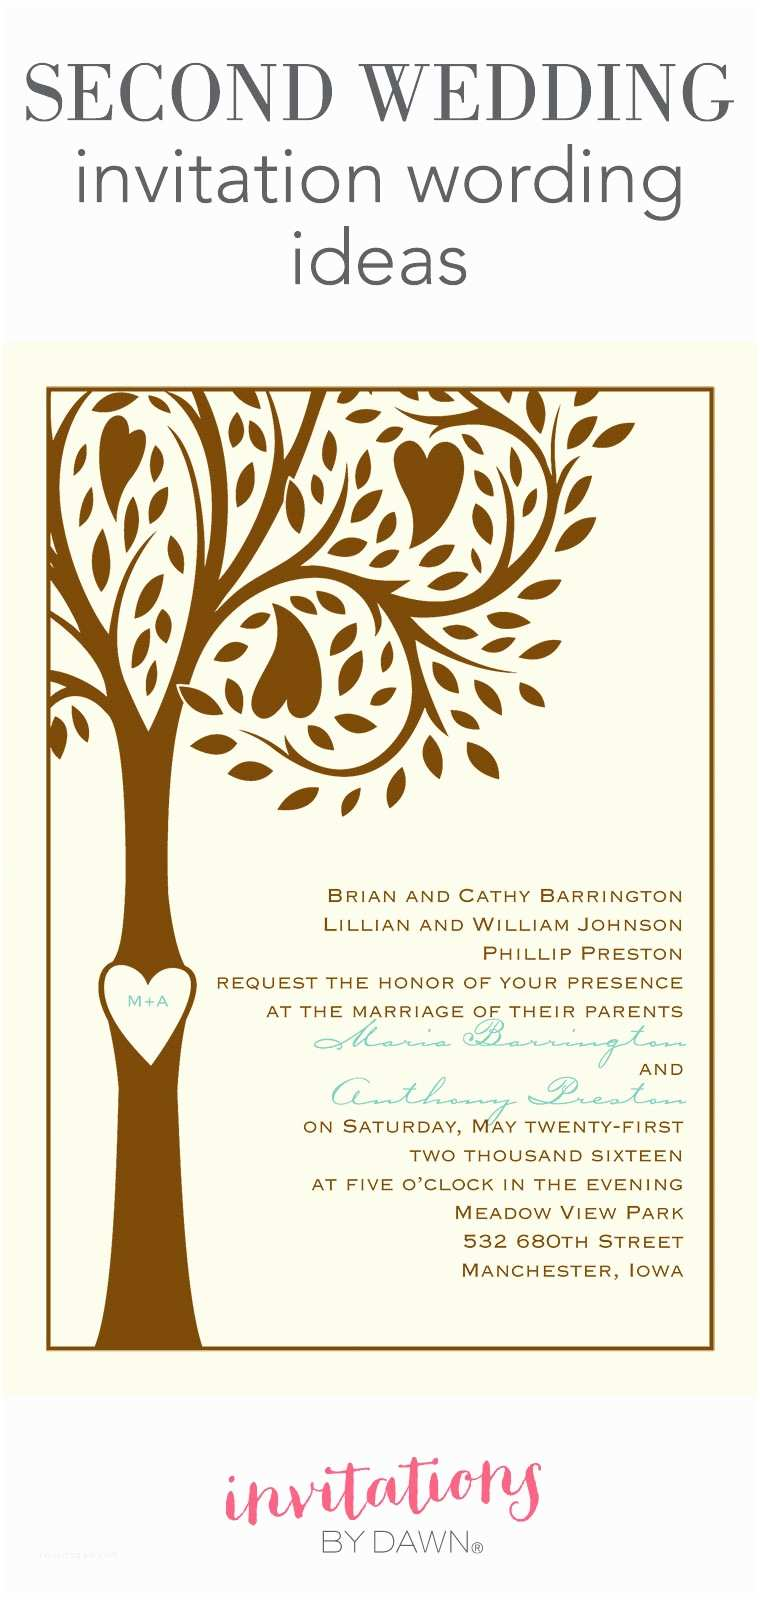 Making Wedding Invitations at Home Second Wedding Invitation Wording